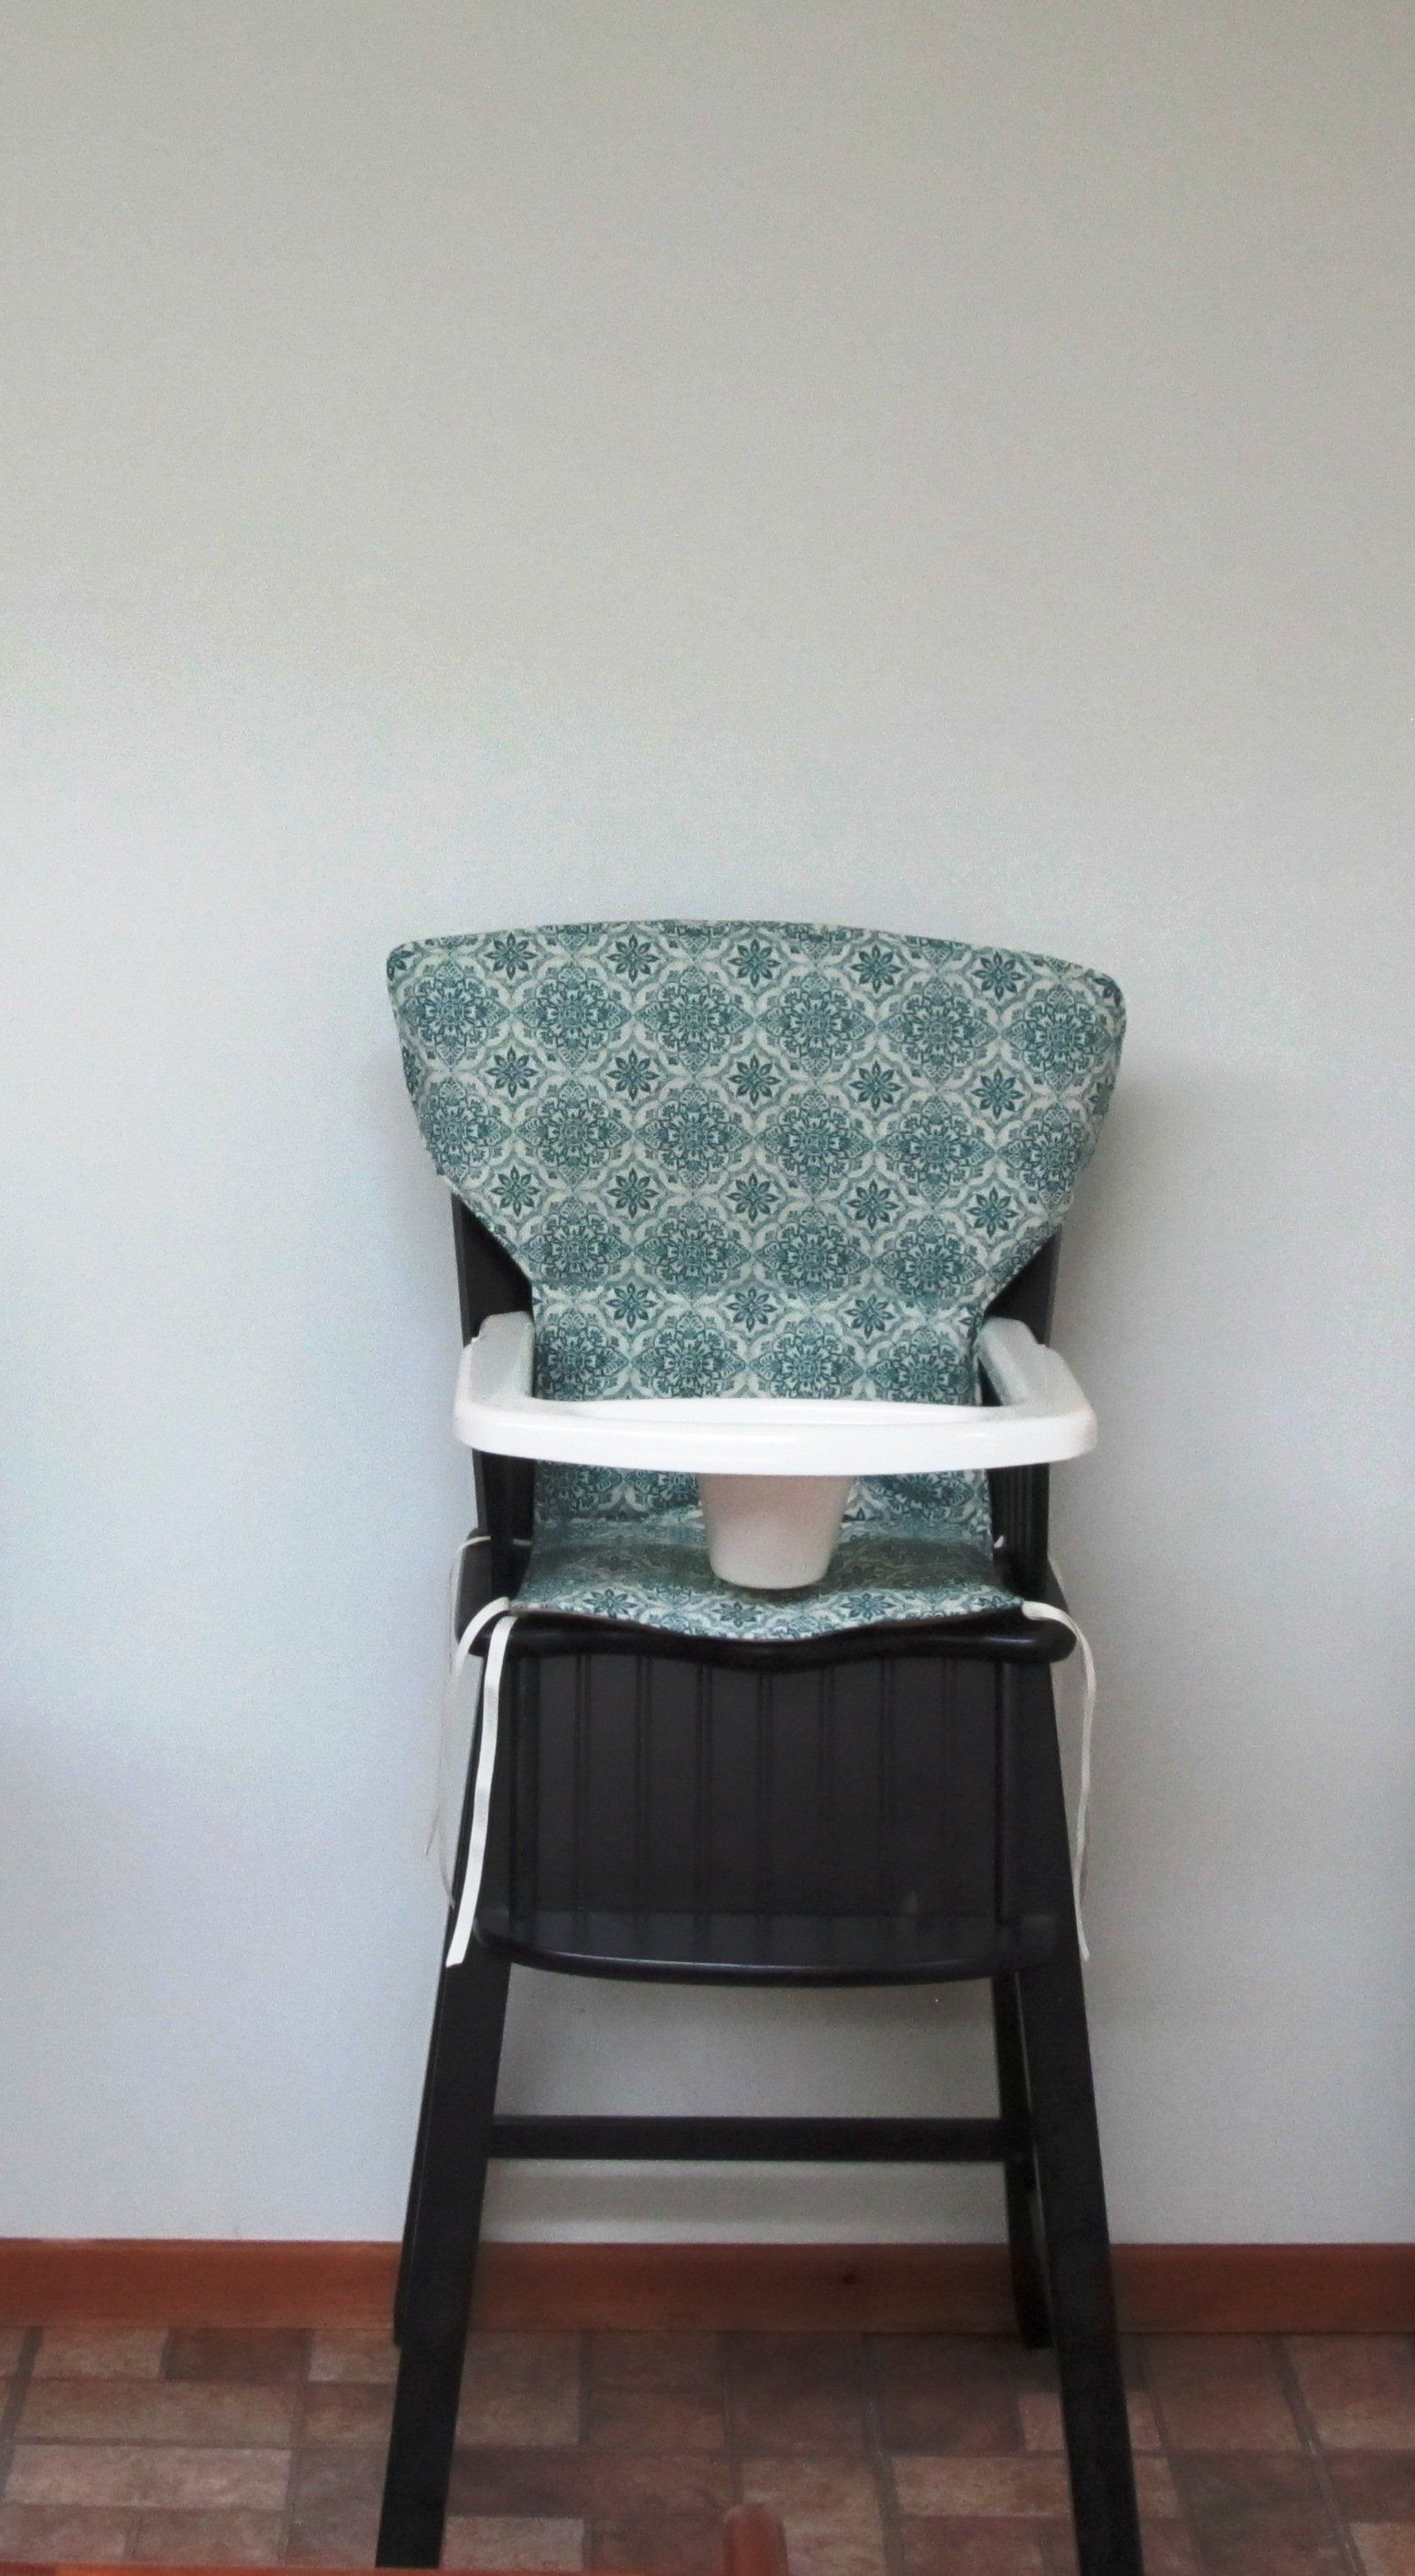 padded high chair cover hire ellesmere port eddie bauer newport or safety first pad replacement feeding baby accessory dark teal damask by